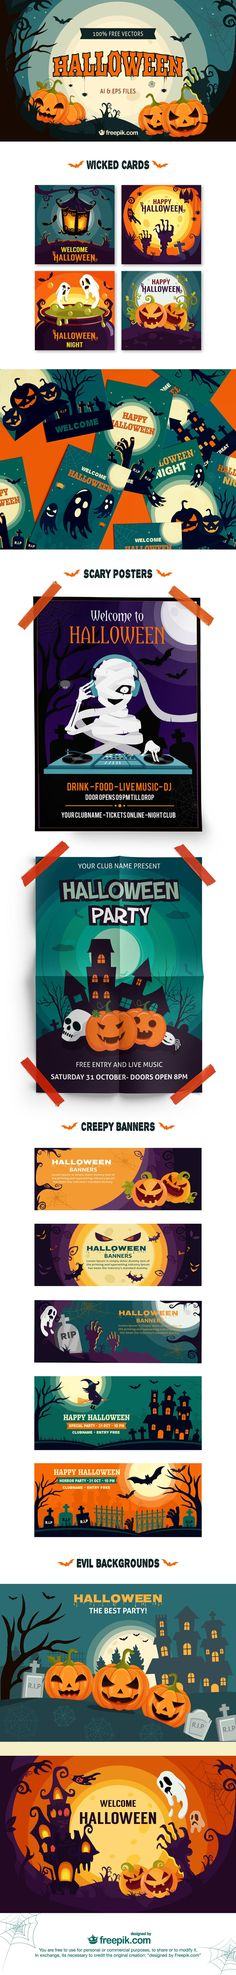 Free Halloween Banners & More I am not going to lie. Halloween is my favorite time of the year. You get to dress up and throw fun costume parties with your friends. That s where this week s awesome freebie comes in. Exclusively by Freepik, we have a collection of free Halloween banners, posters, and graphics you [ ]